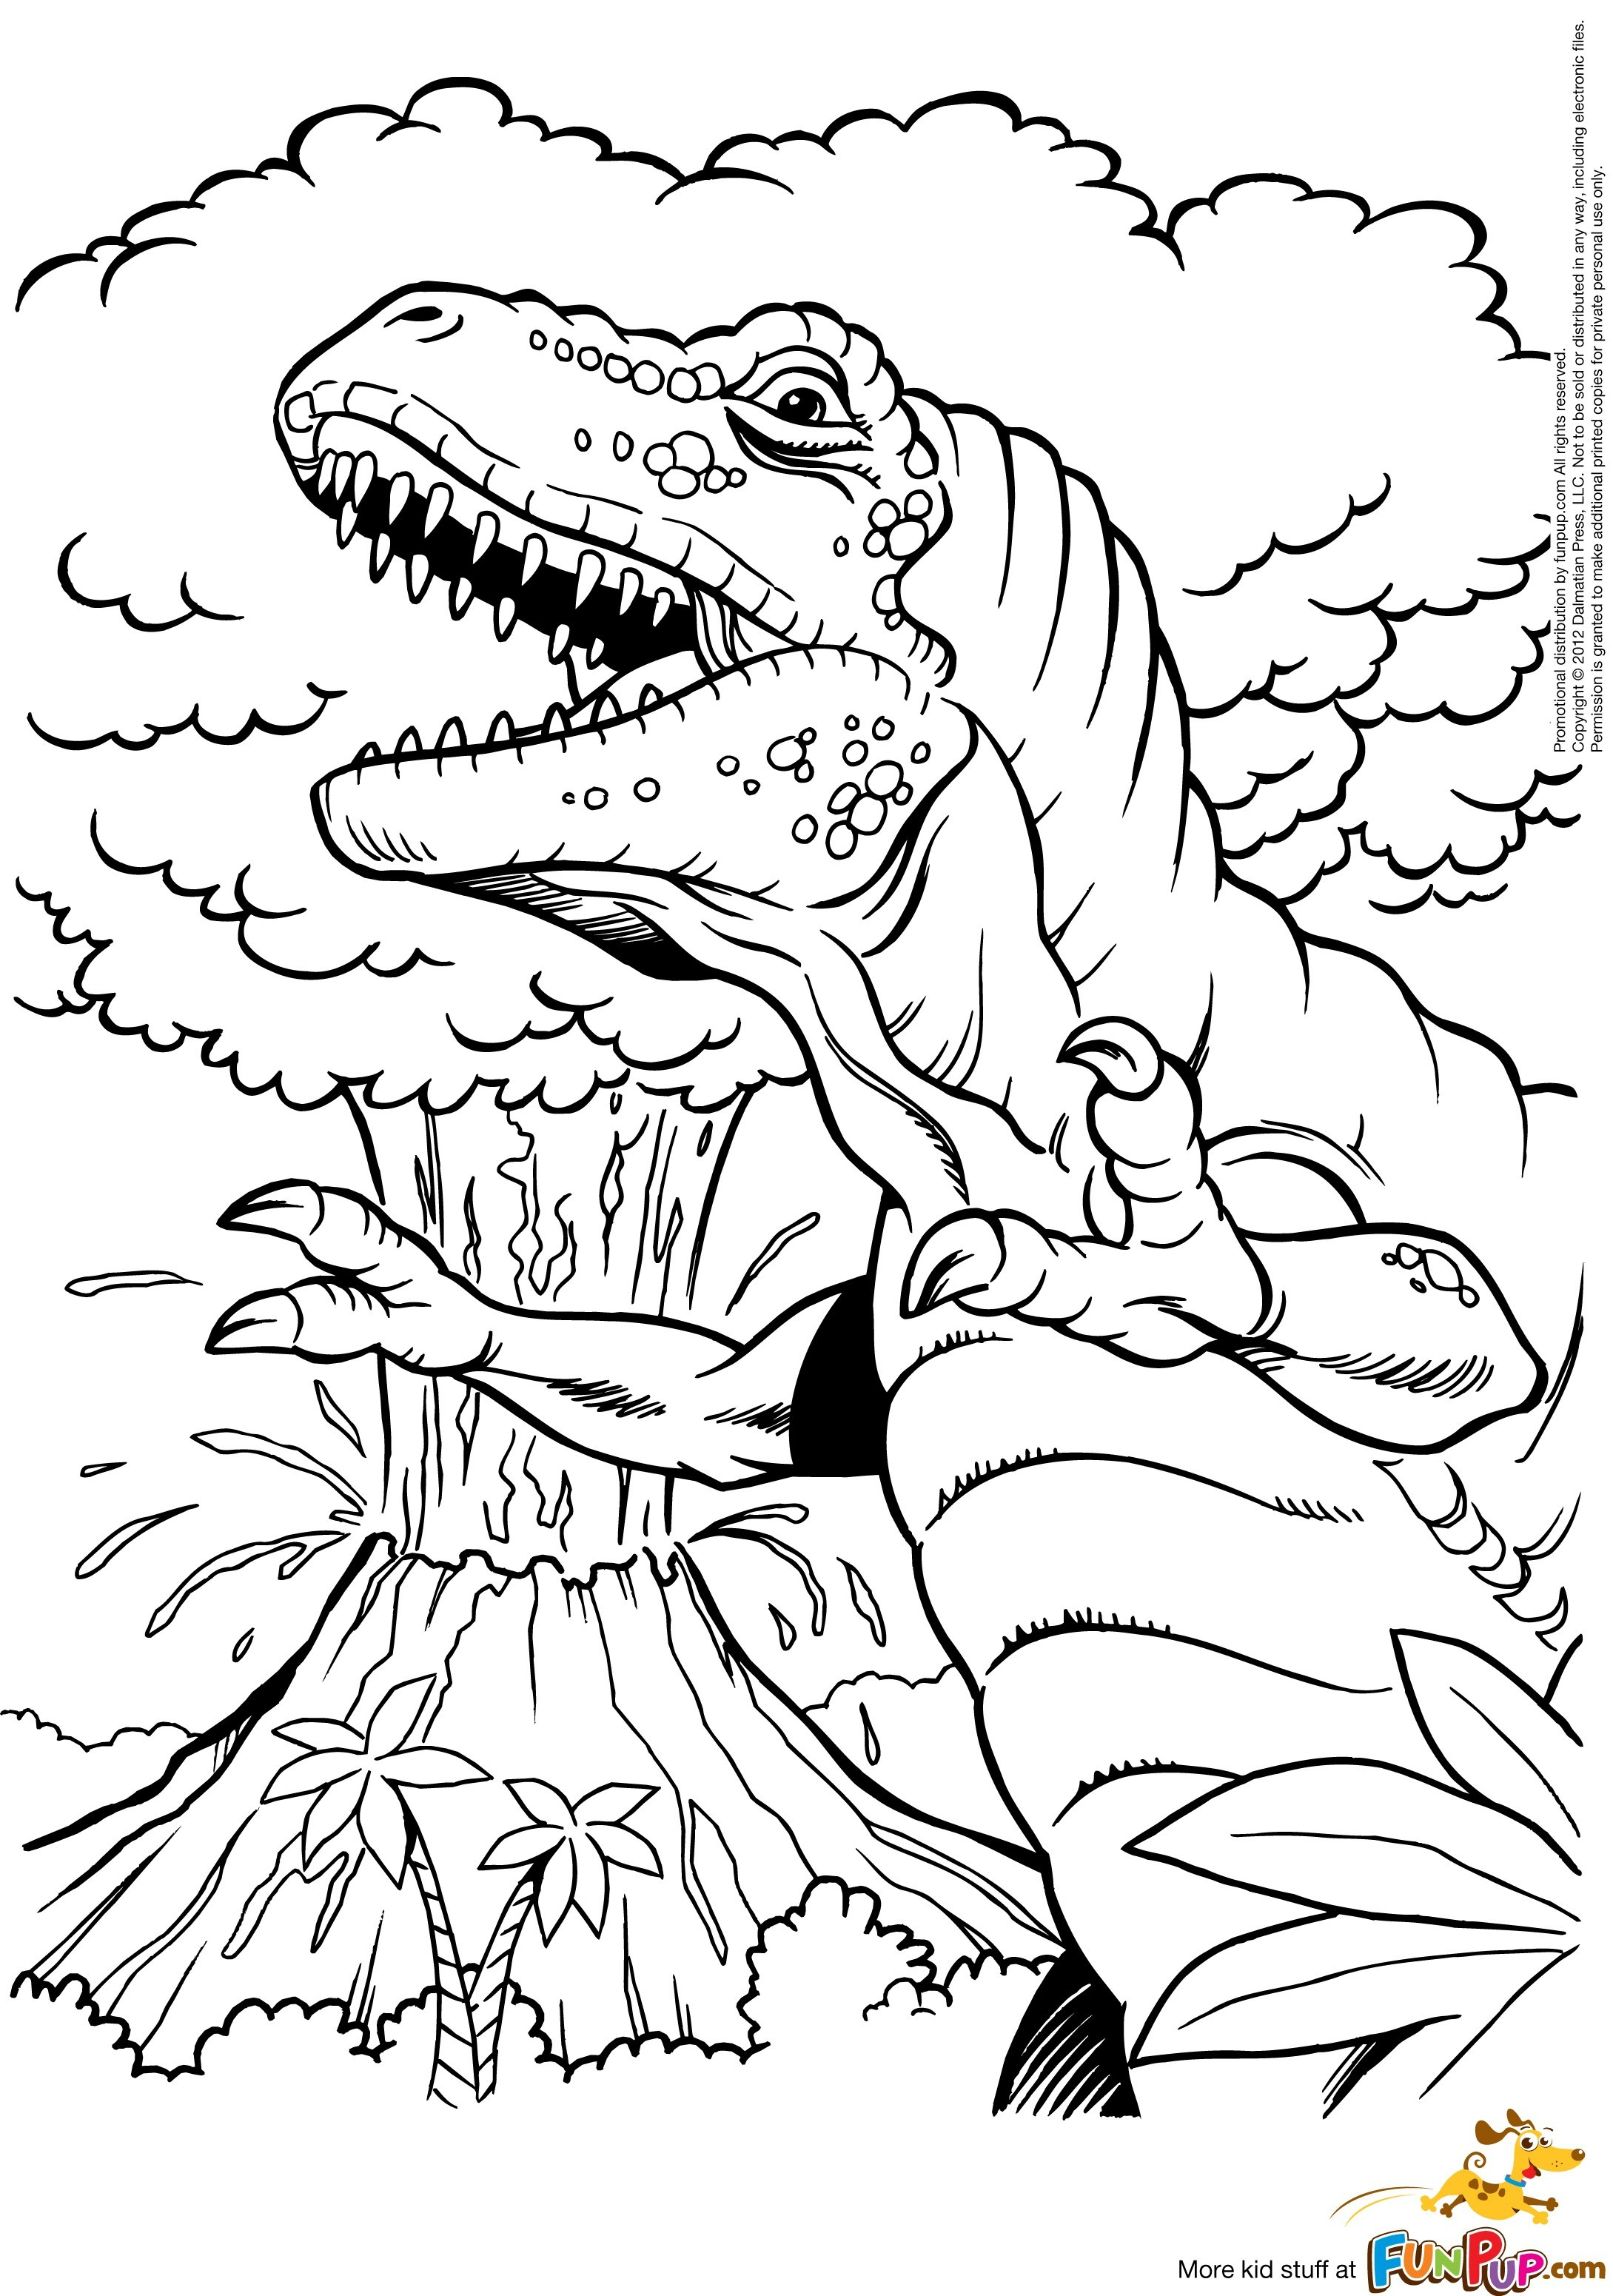 minecraft dinosaur coloring pages minecraft logo drawing at getdrawings free download coloring minecraft dinosaur pages